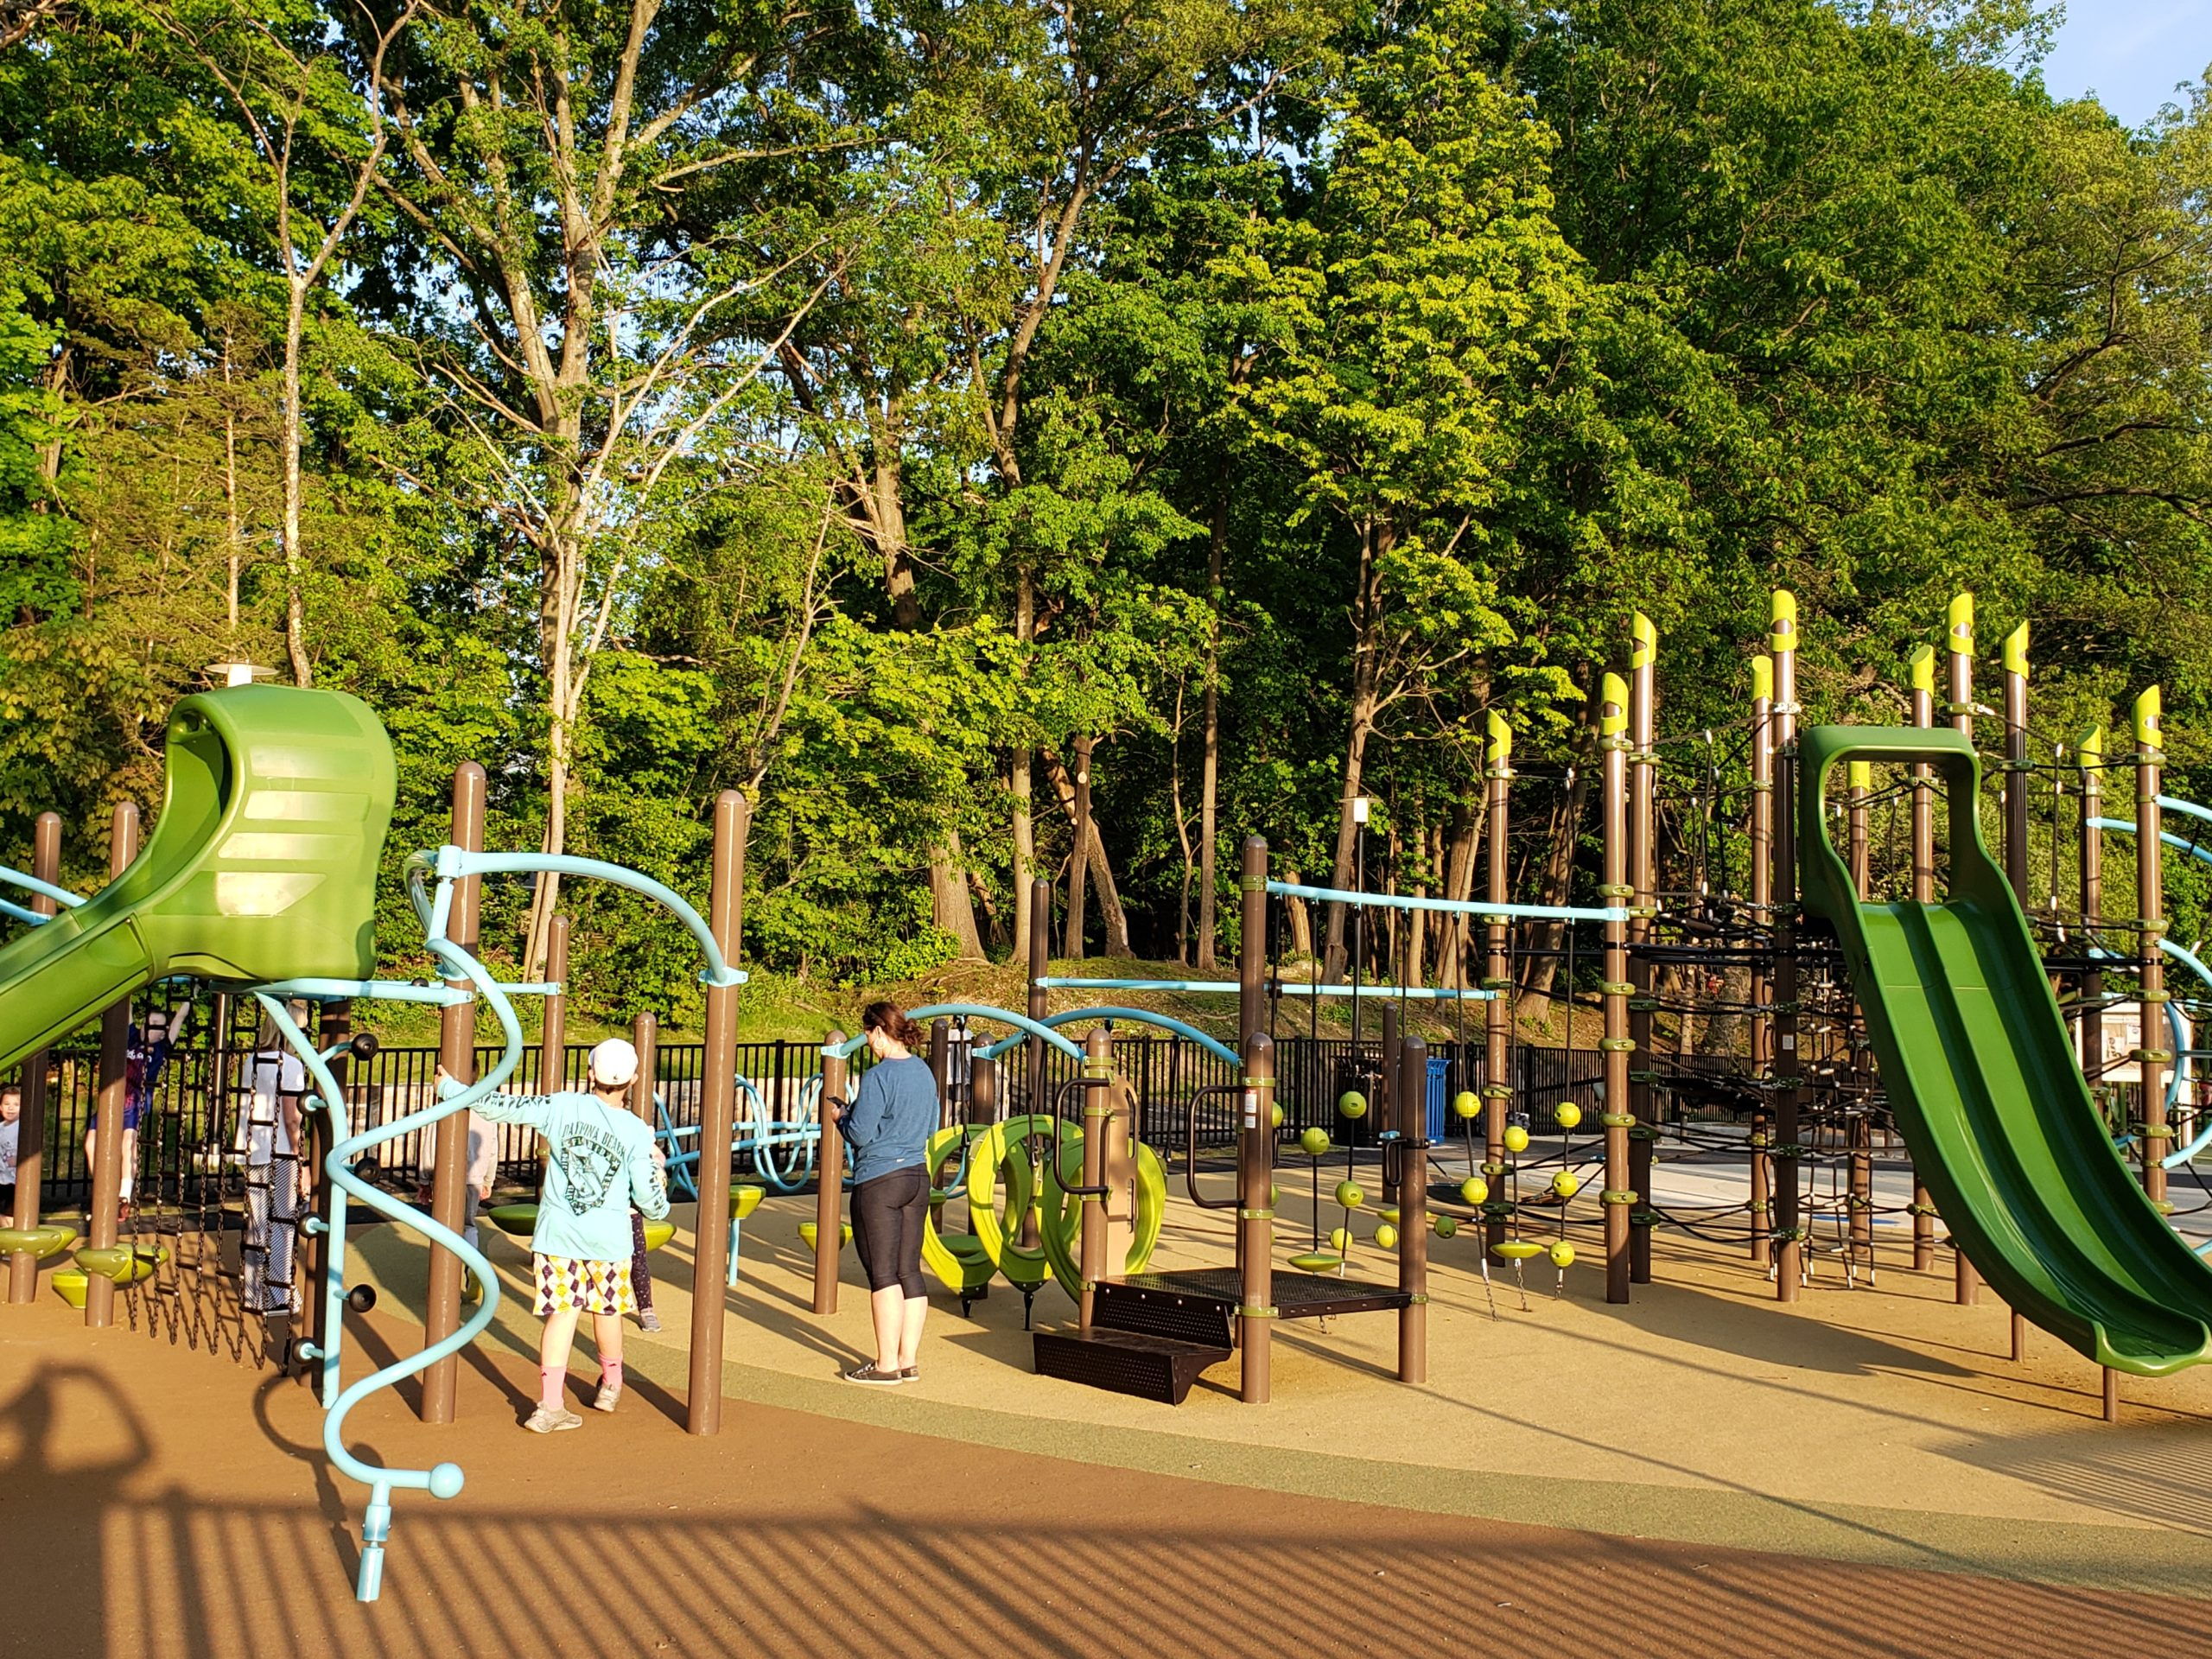 Choate Park Medway Massachusetts Landscape Structures Playground